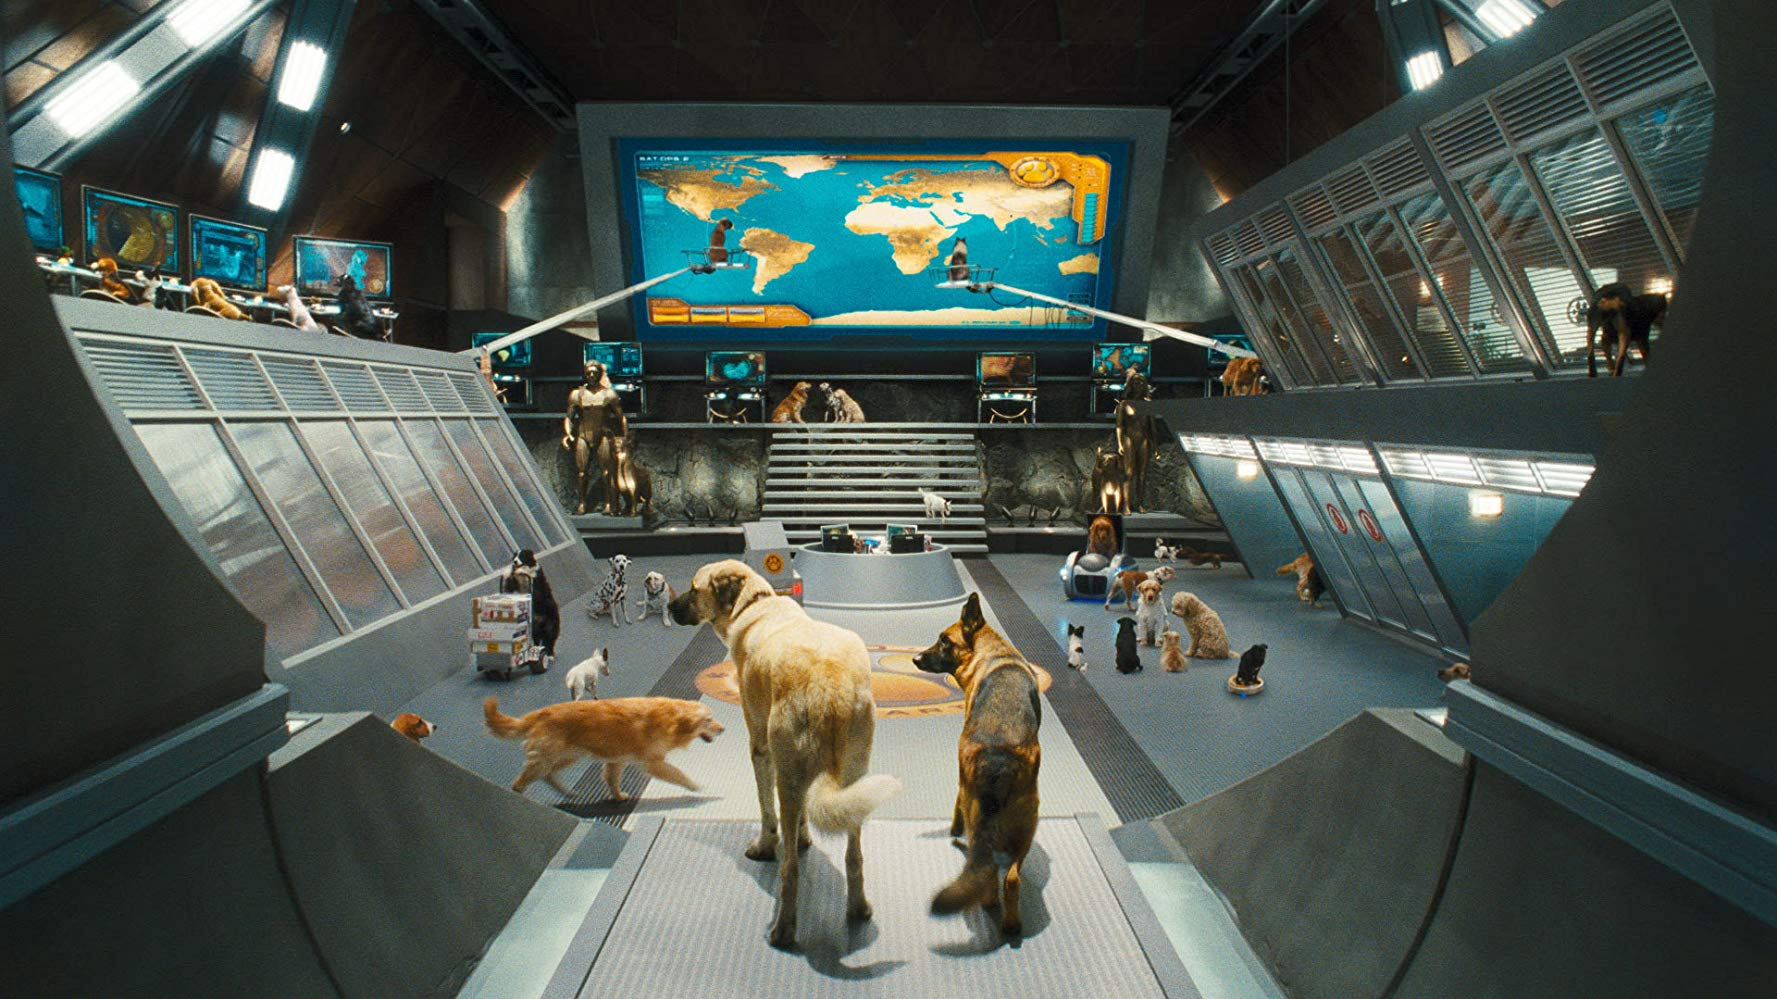 The MEOWS command centre in Cats & Dogs: The Revenge of Kitty Galore (2010)